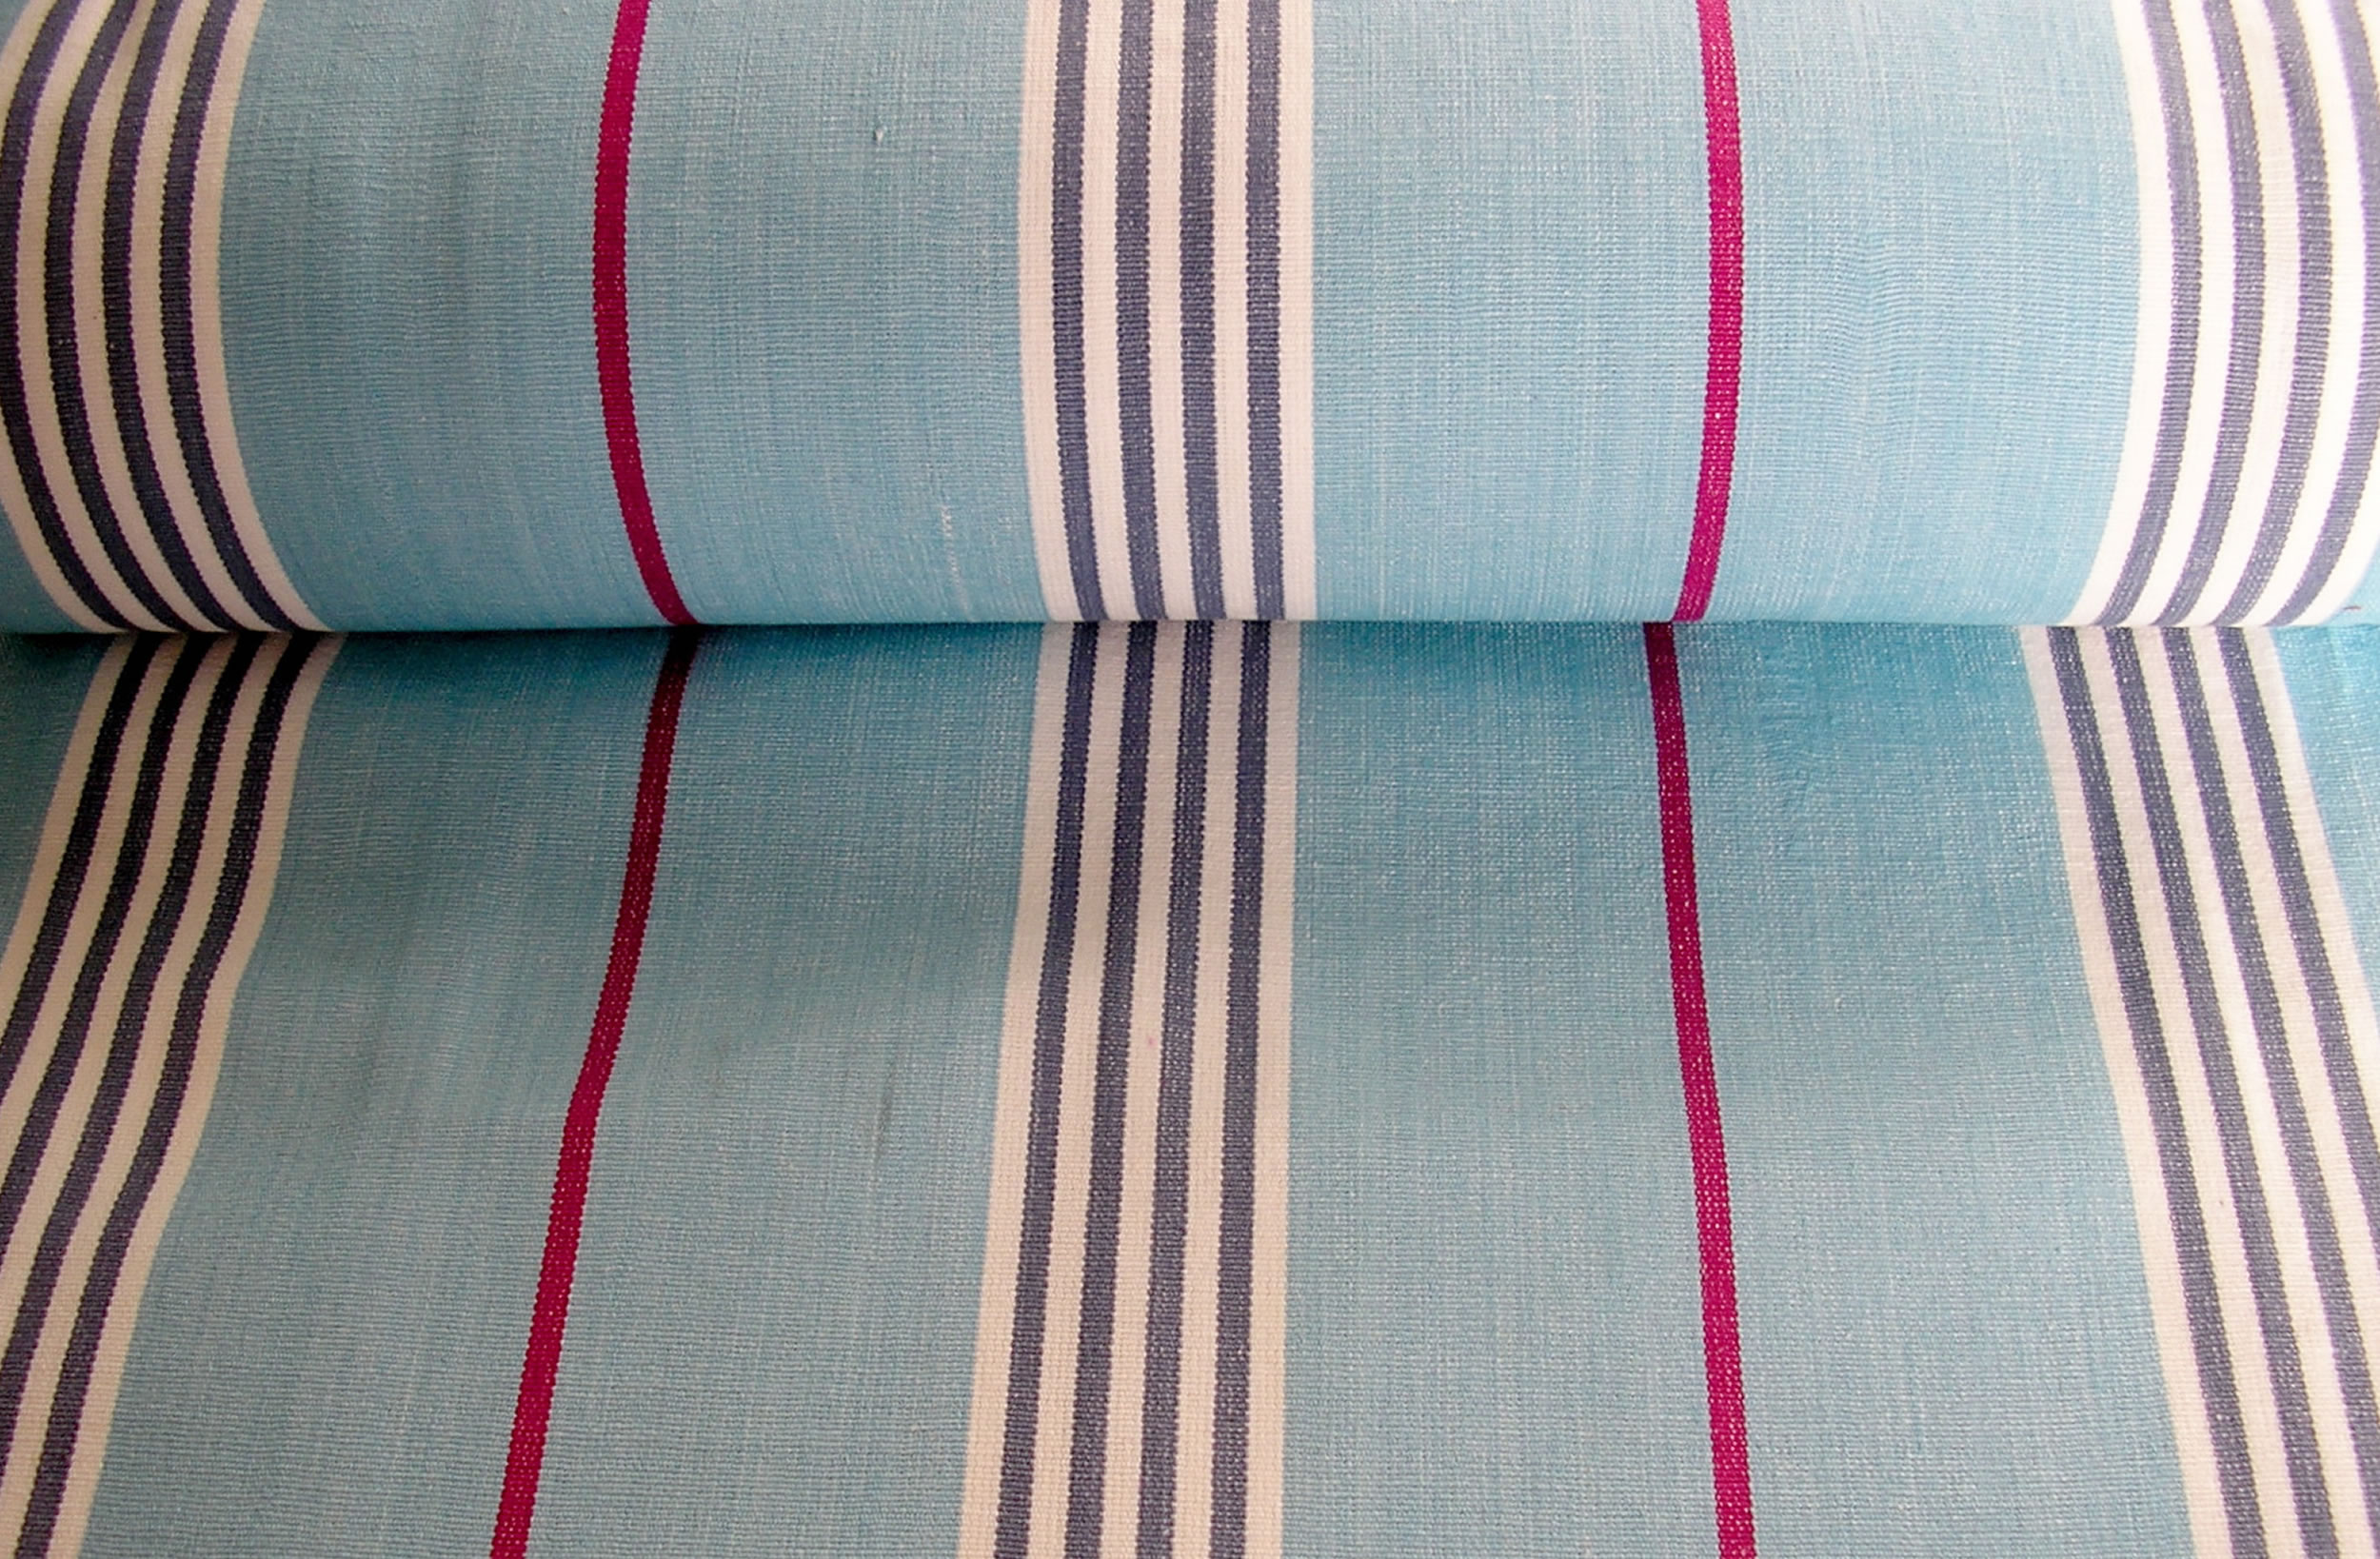 pale blue - Deckchair Canvas | Deckchair Fabrics | Striped Deck Chair Fabrics